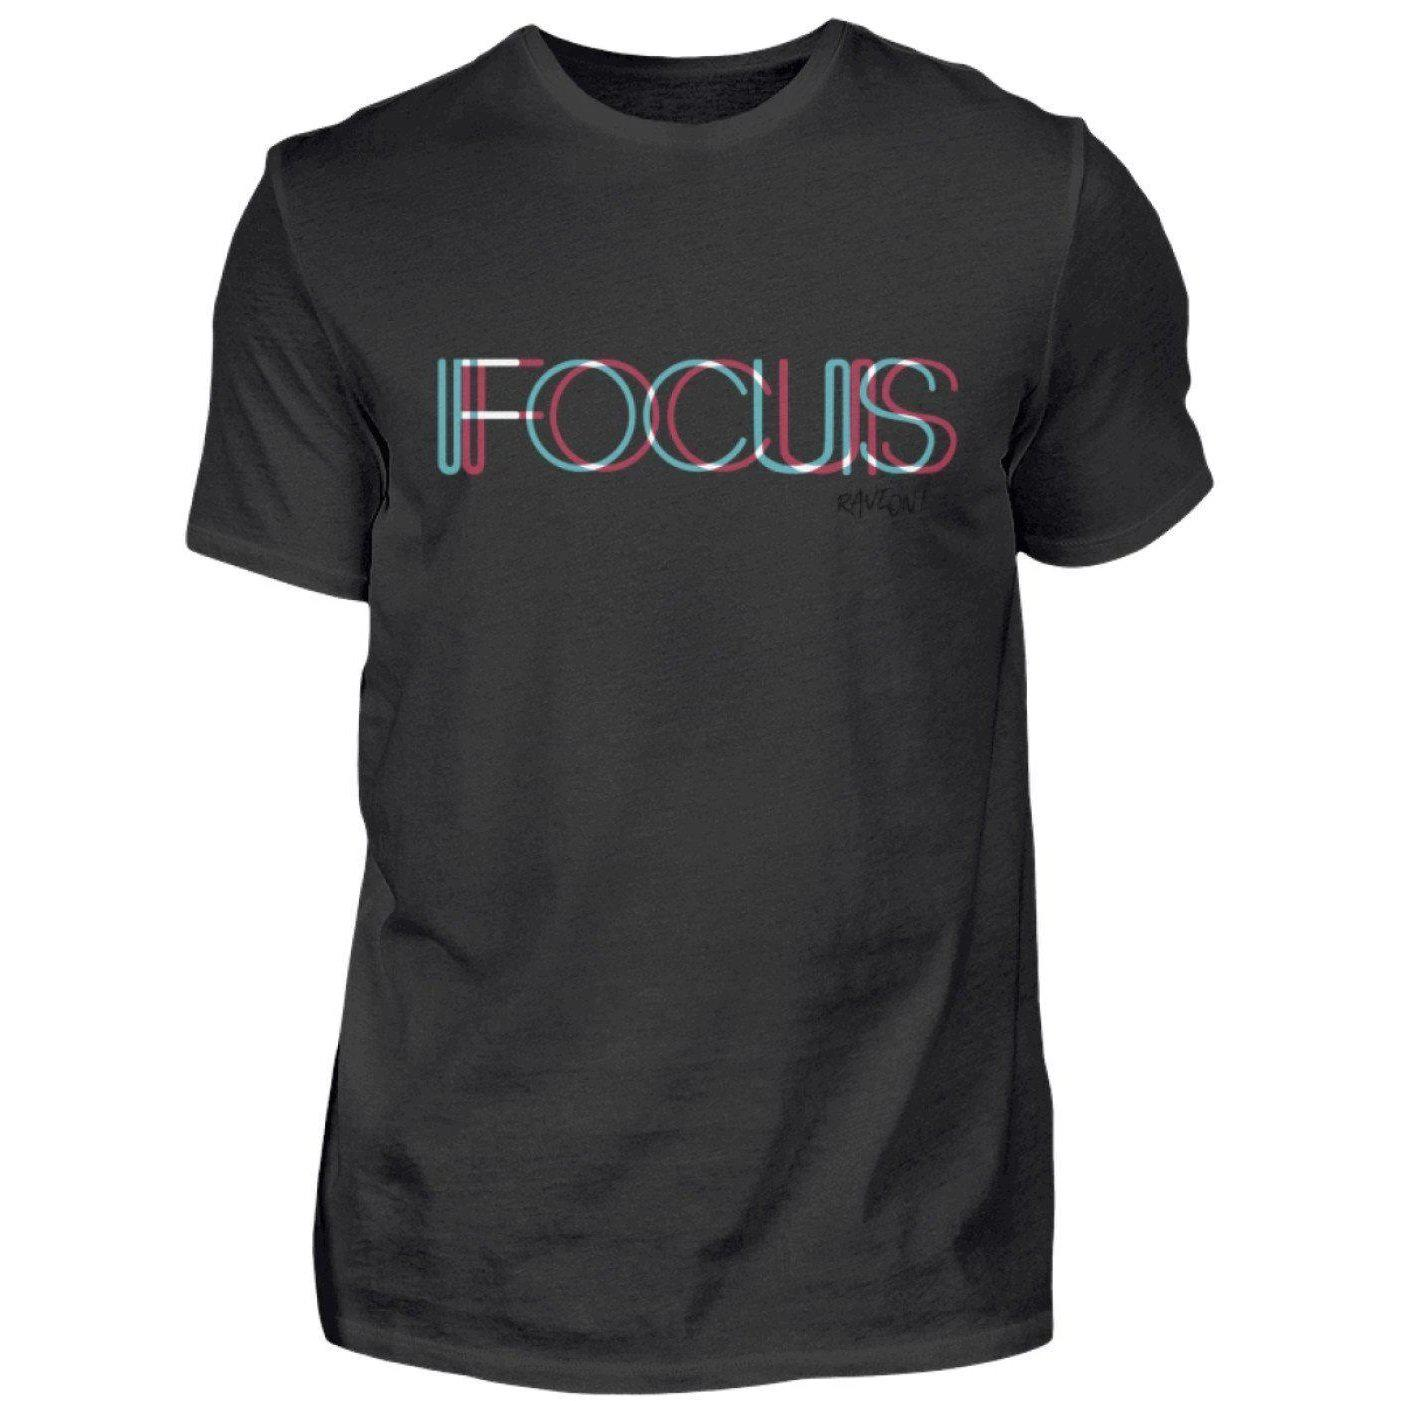 FOCUS trippy -Rave On!®  - Herren Shirt 19.95 Rave-On!  I WWW.RAVE-ON.SHOP